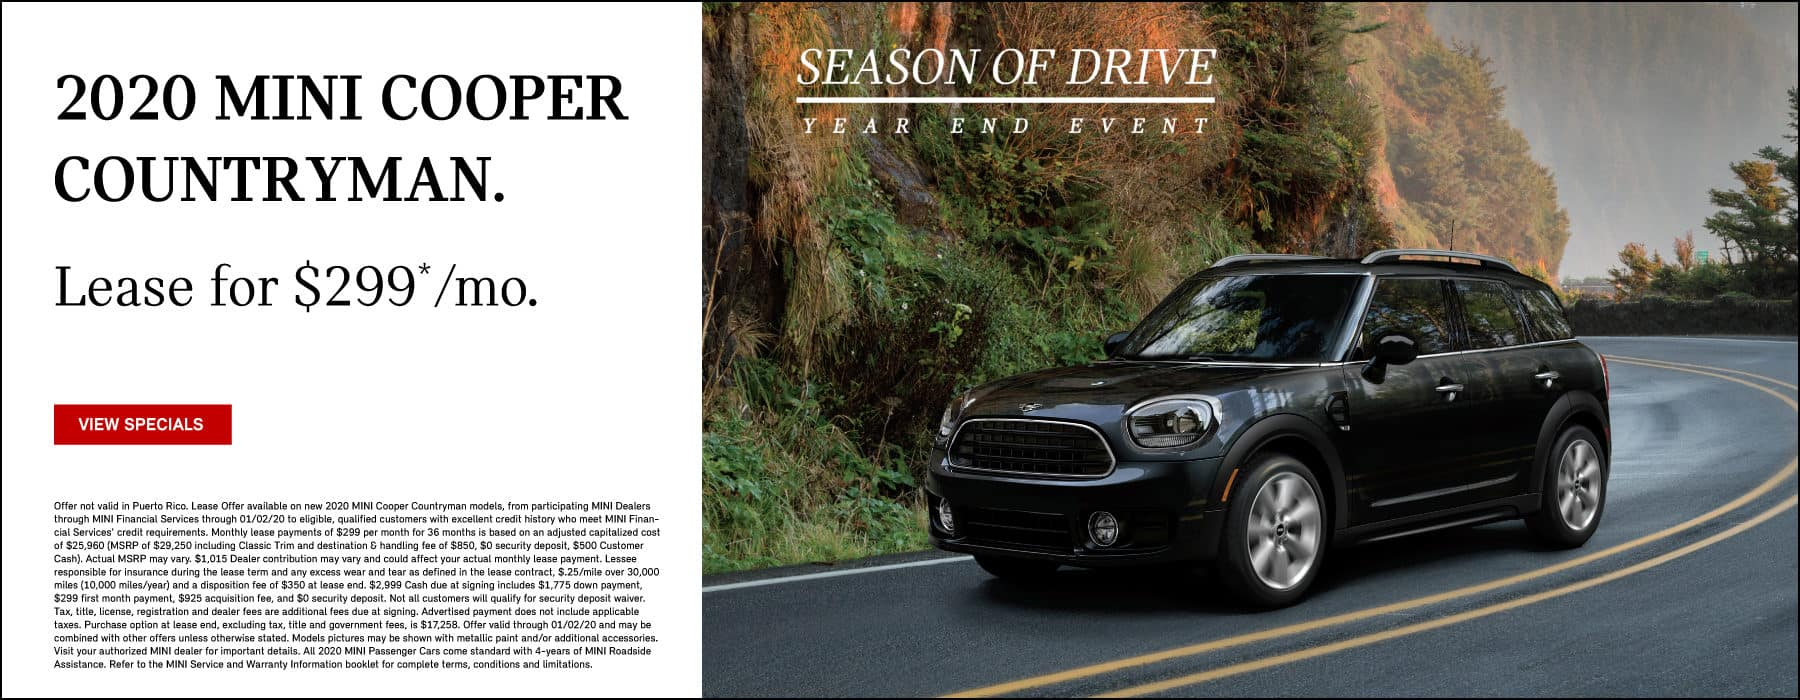 2020 MINI Cooper Countryman.  Lease for $299 per month.  View Specials.  Black MINI Cooper Countrymand driving on country road.